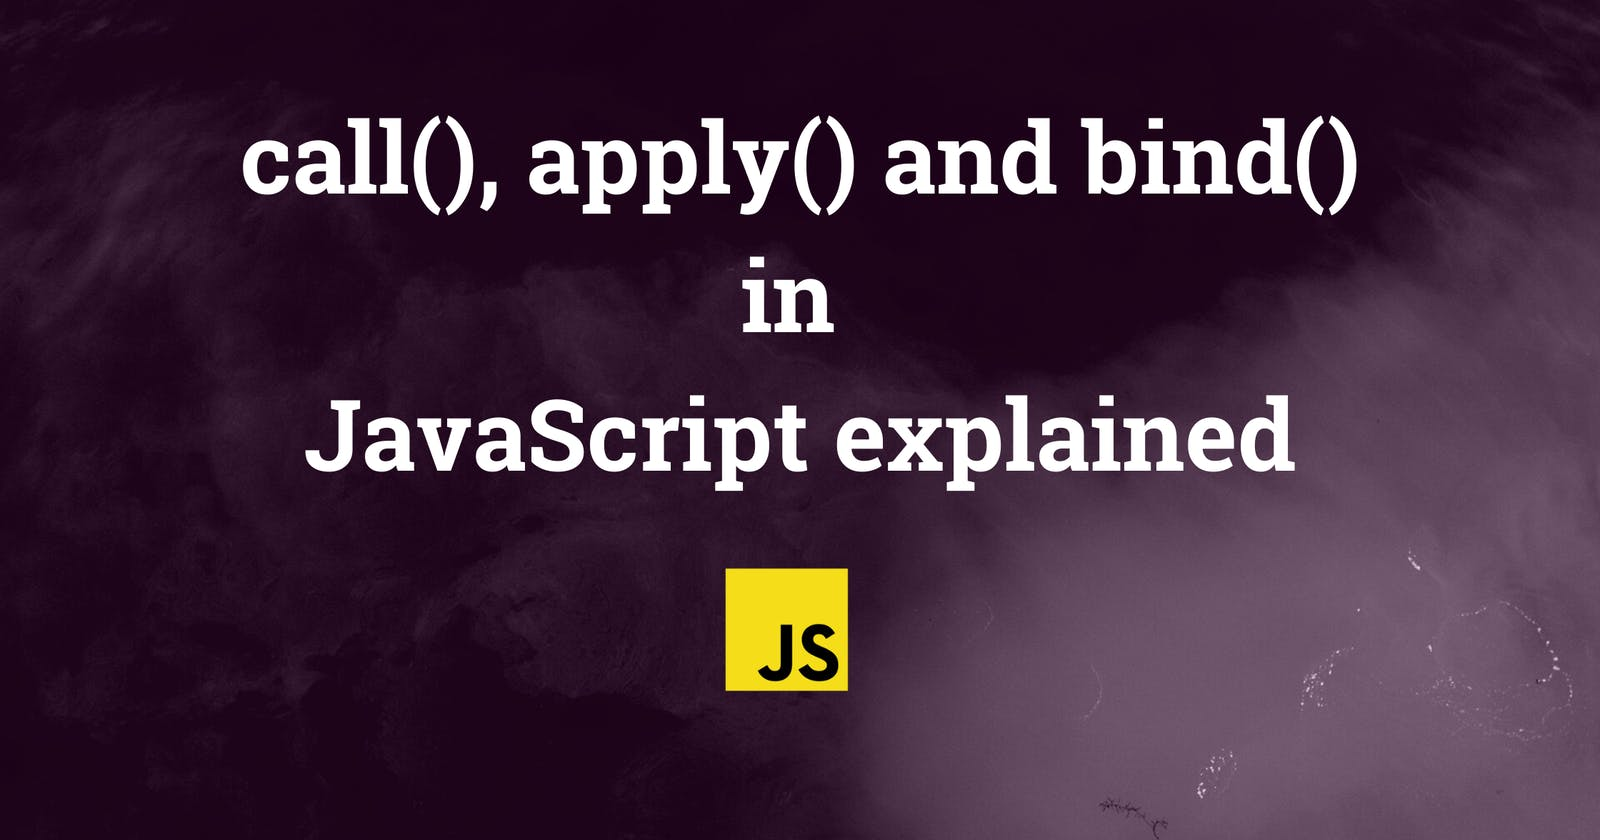 call(), apply() and bind() in JavaScript explained